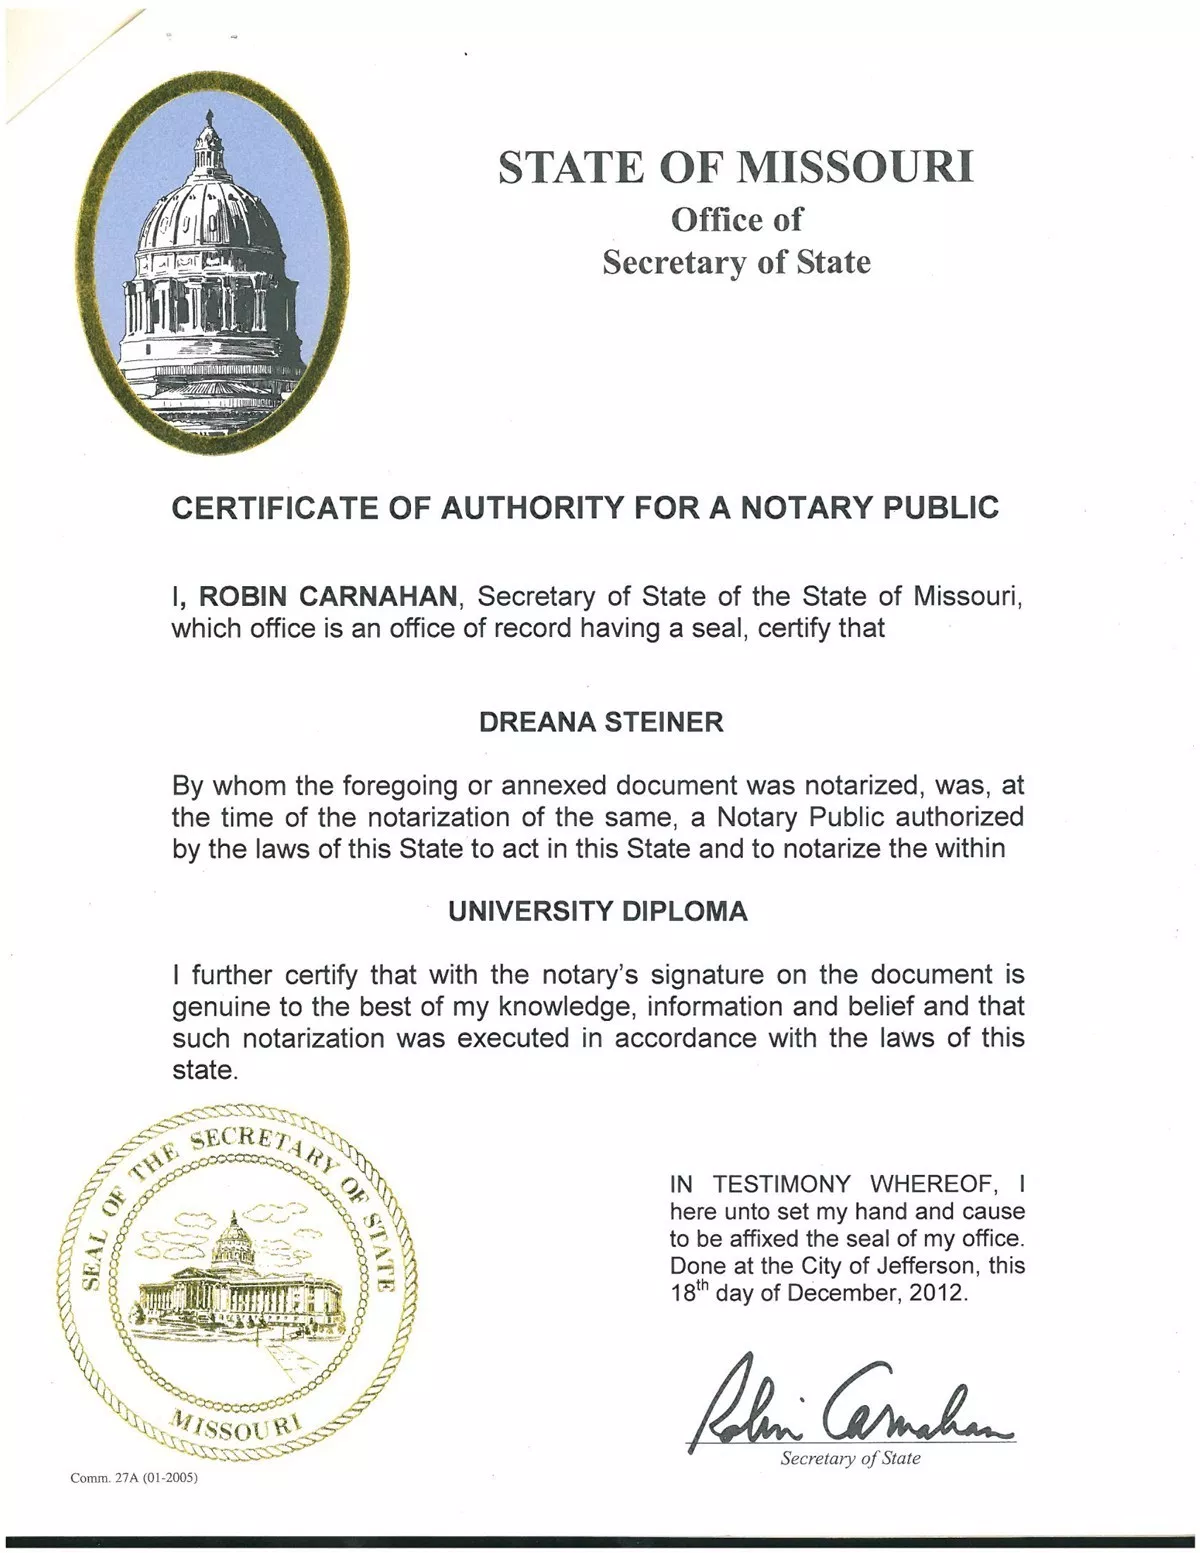 Certificate of Authority for Notary